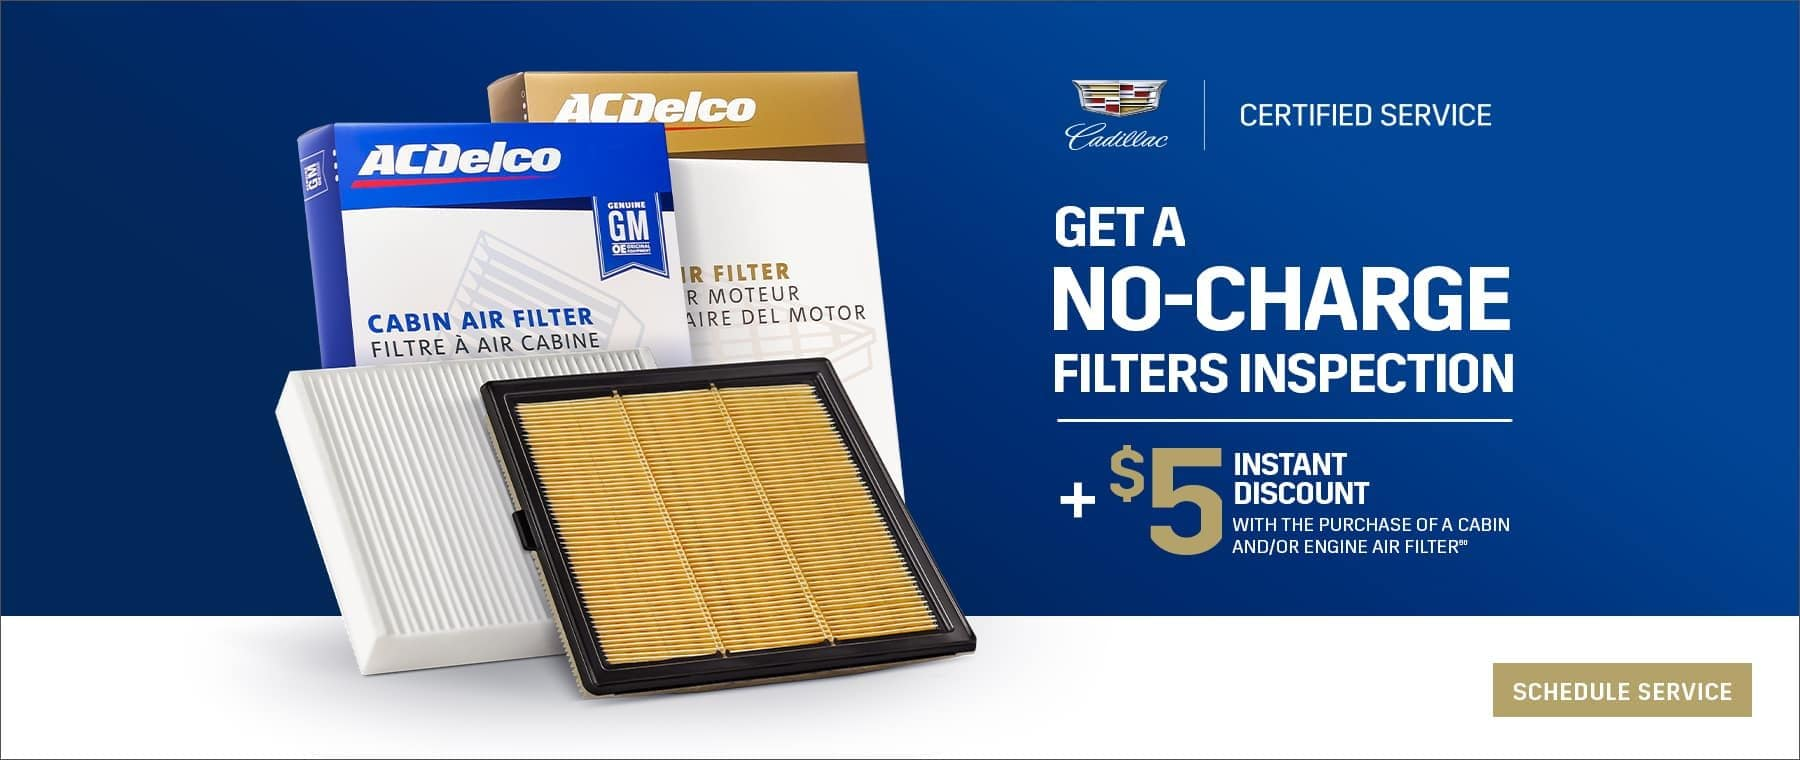 No-Charge Filters Inspection